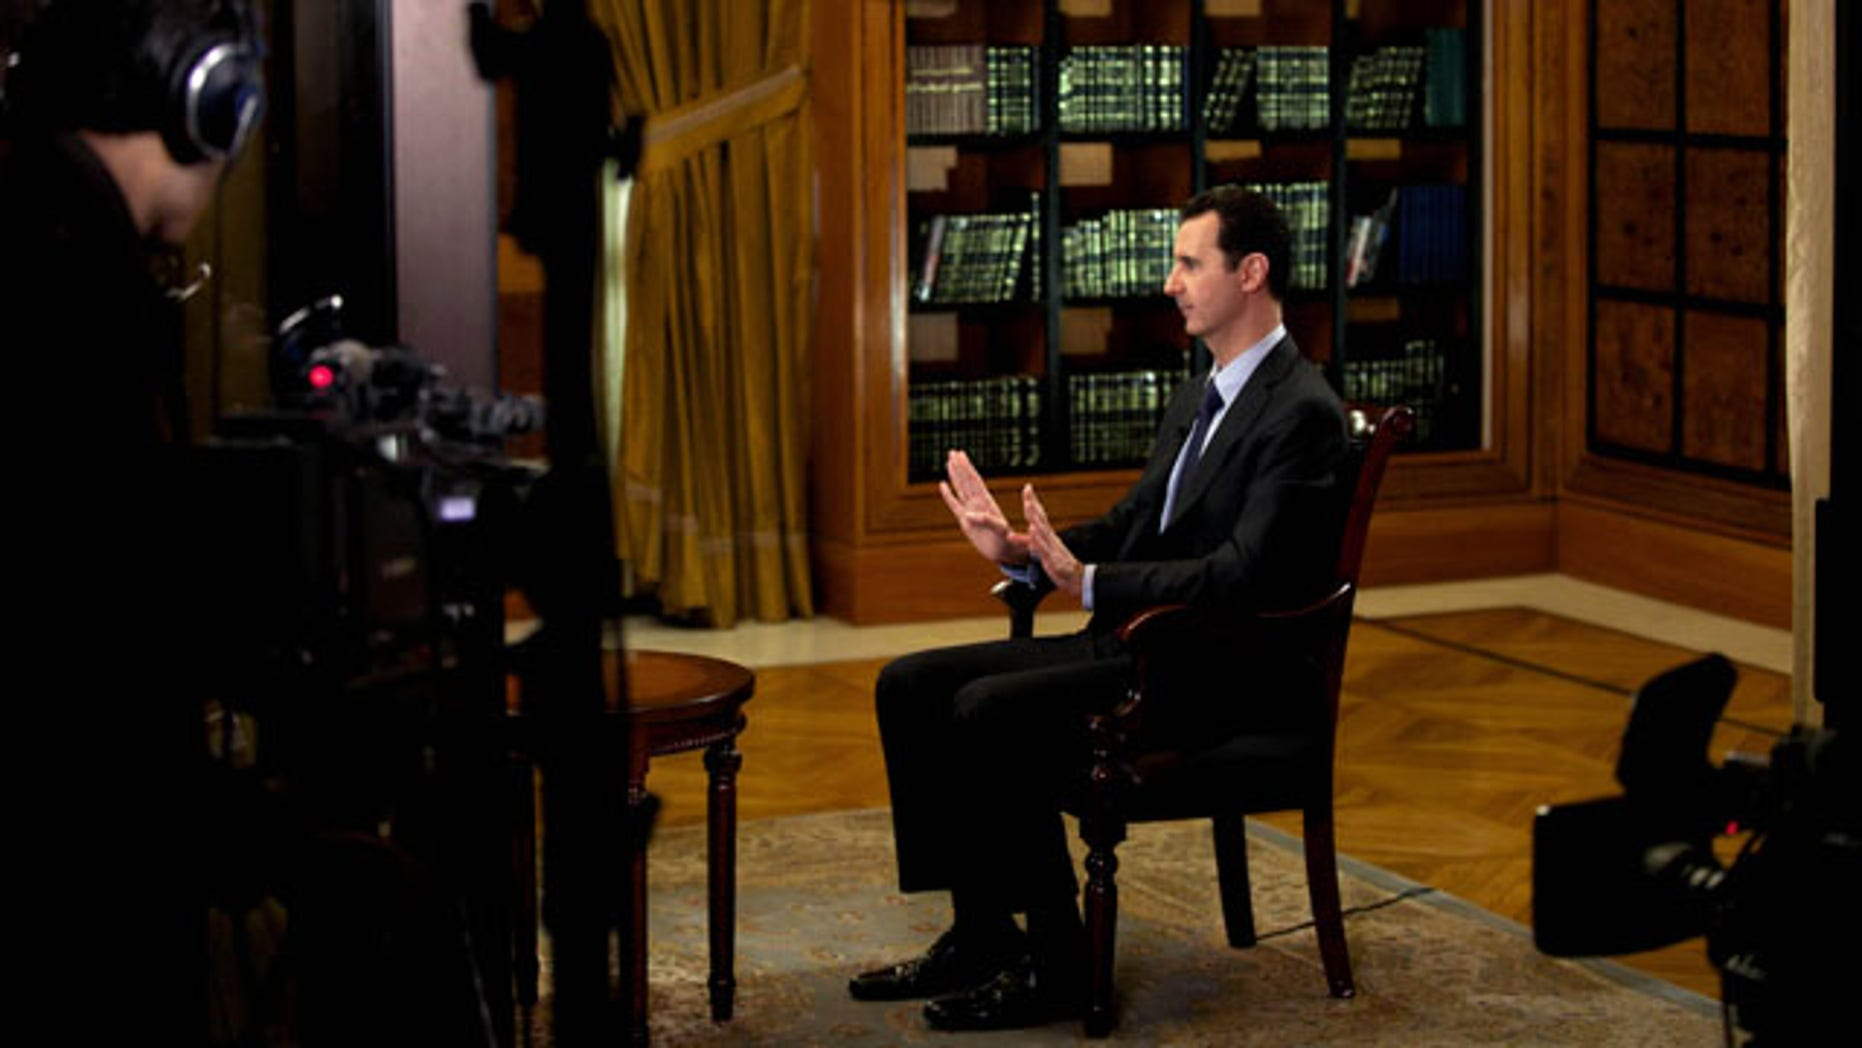 October 21, 2013: In this photo, which AP obtained from Syrian official news agency SANA and which has been authenticated based on its contents and other AP reporting, President Bashar Assad gestures as he speaks during an interview with Lebanon's Al-Mayadeen TV, at the presidential palace in Damascus, Syria, Monday. (AP Photo)